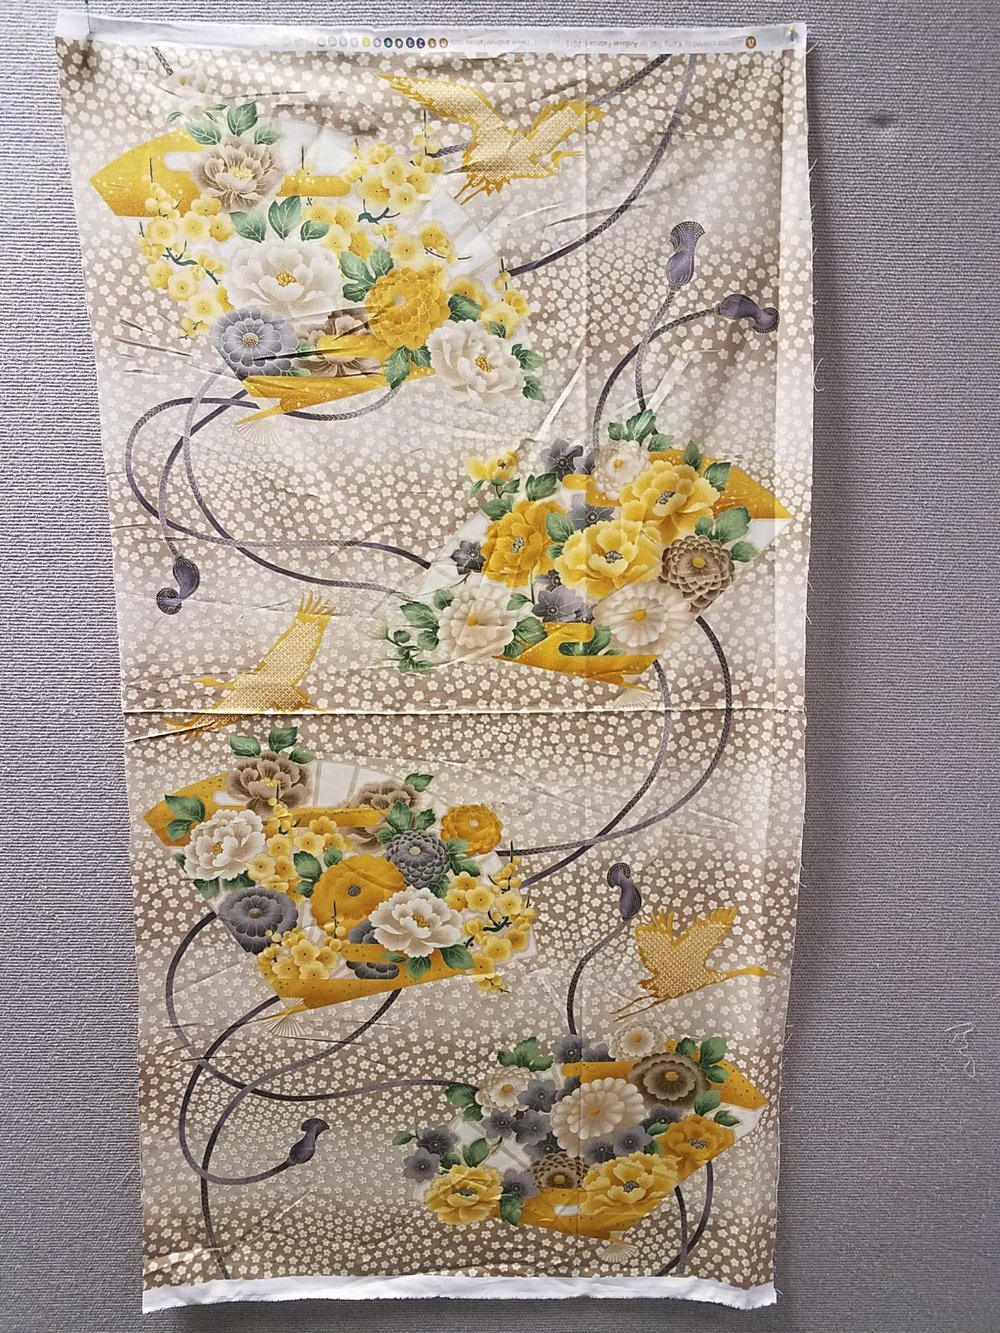 Golden Sleigh of Flowers by Kathy Hall for Andover Fabrics